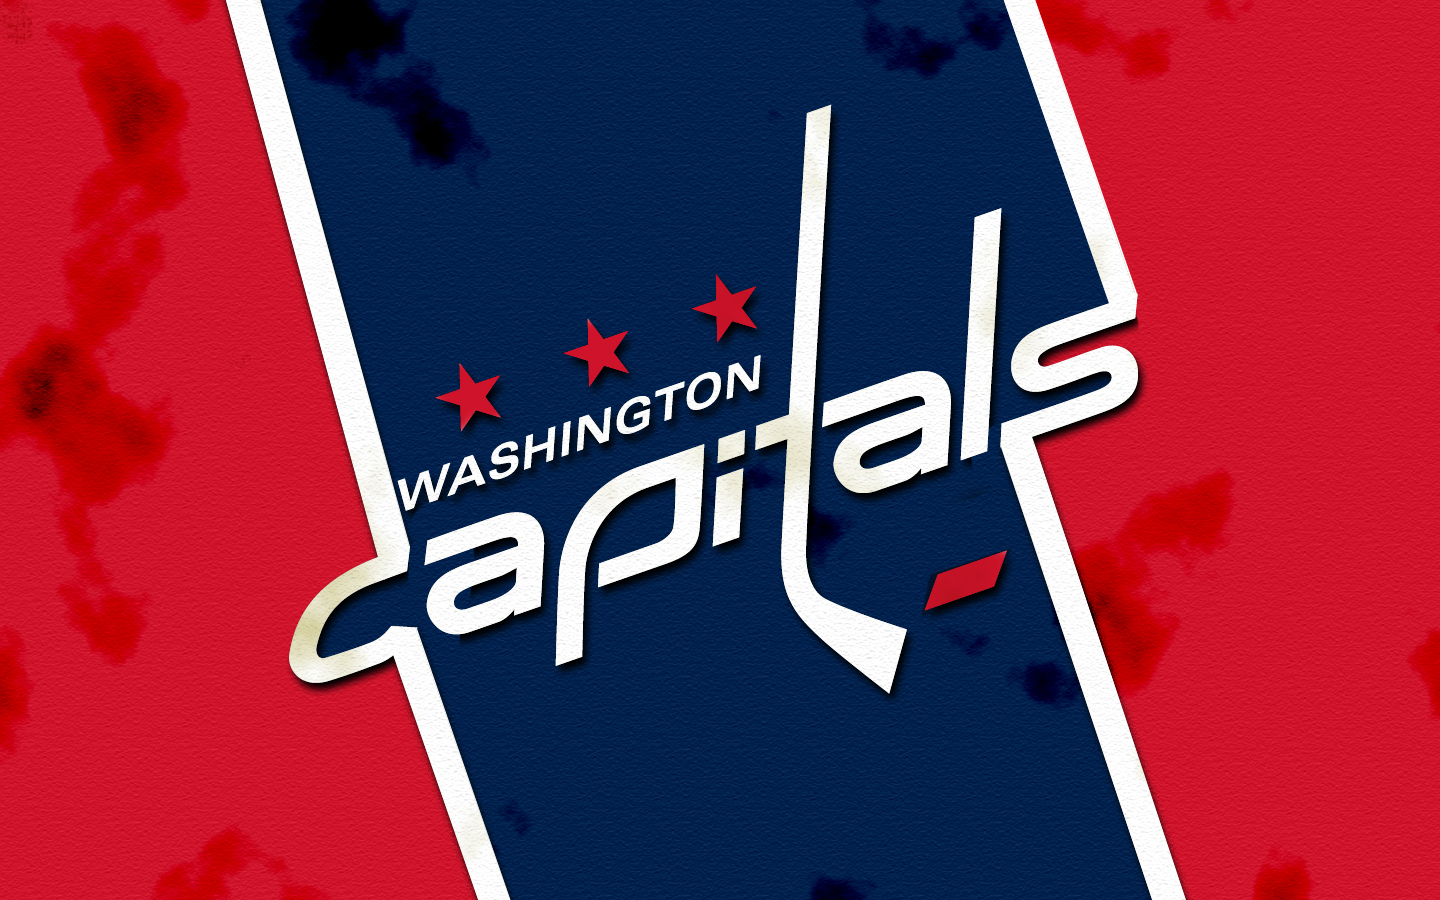 washington capitals logo wallpaper wallpapersafari